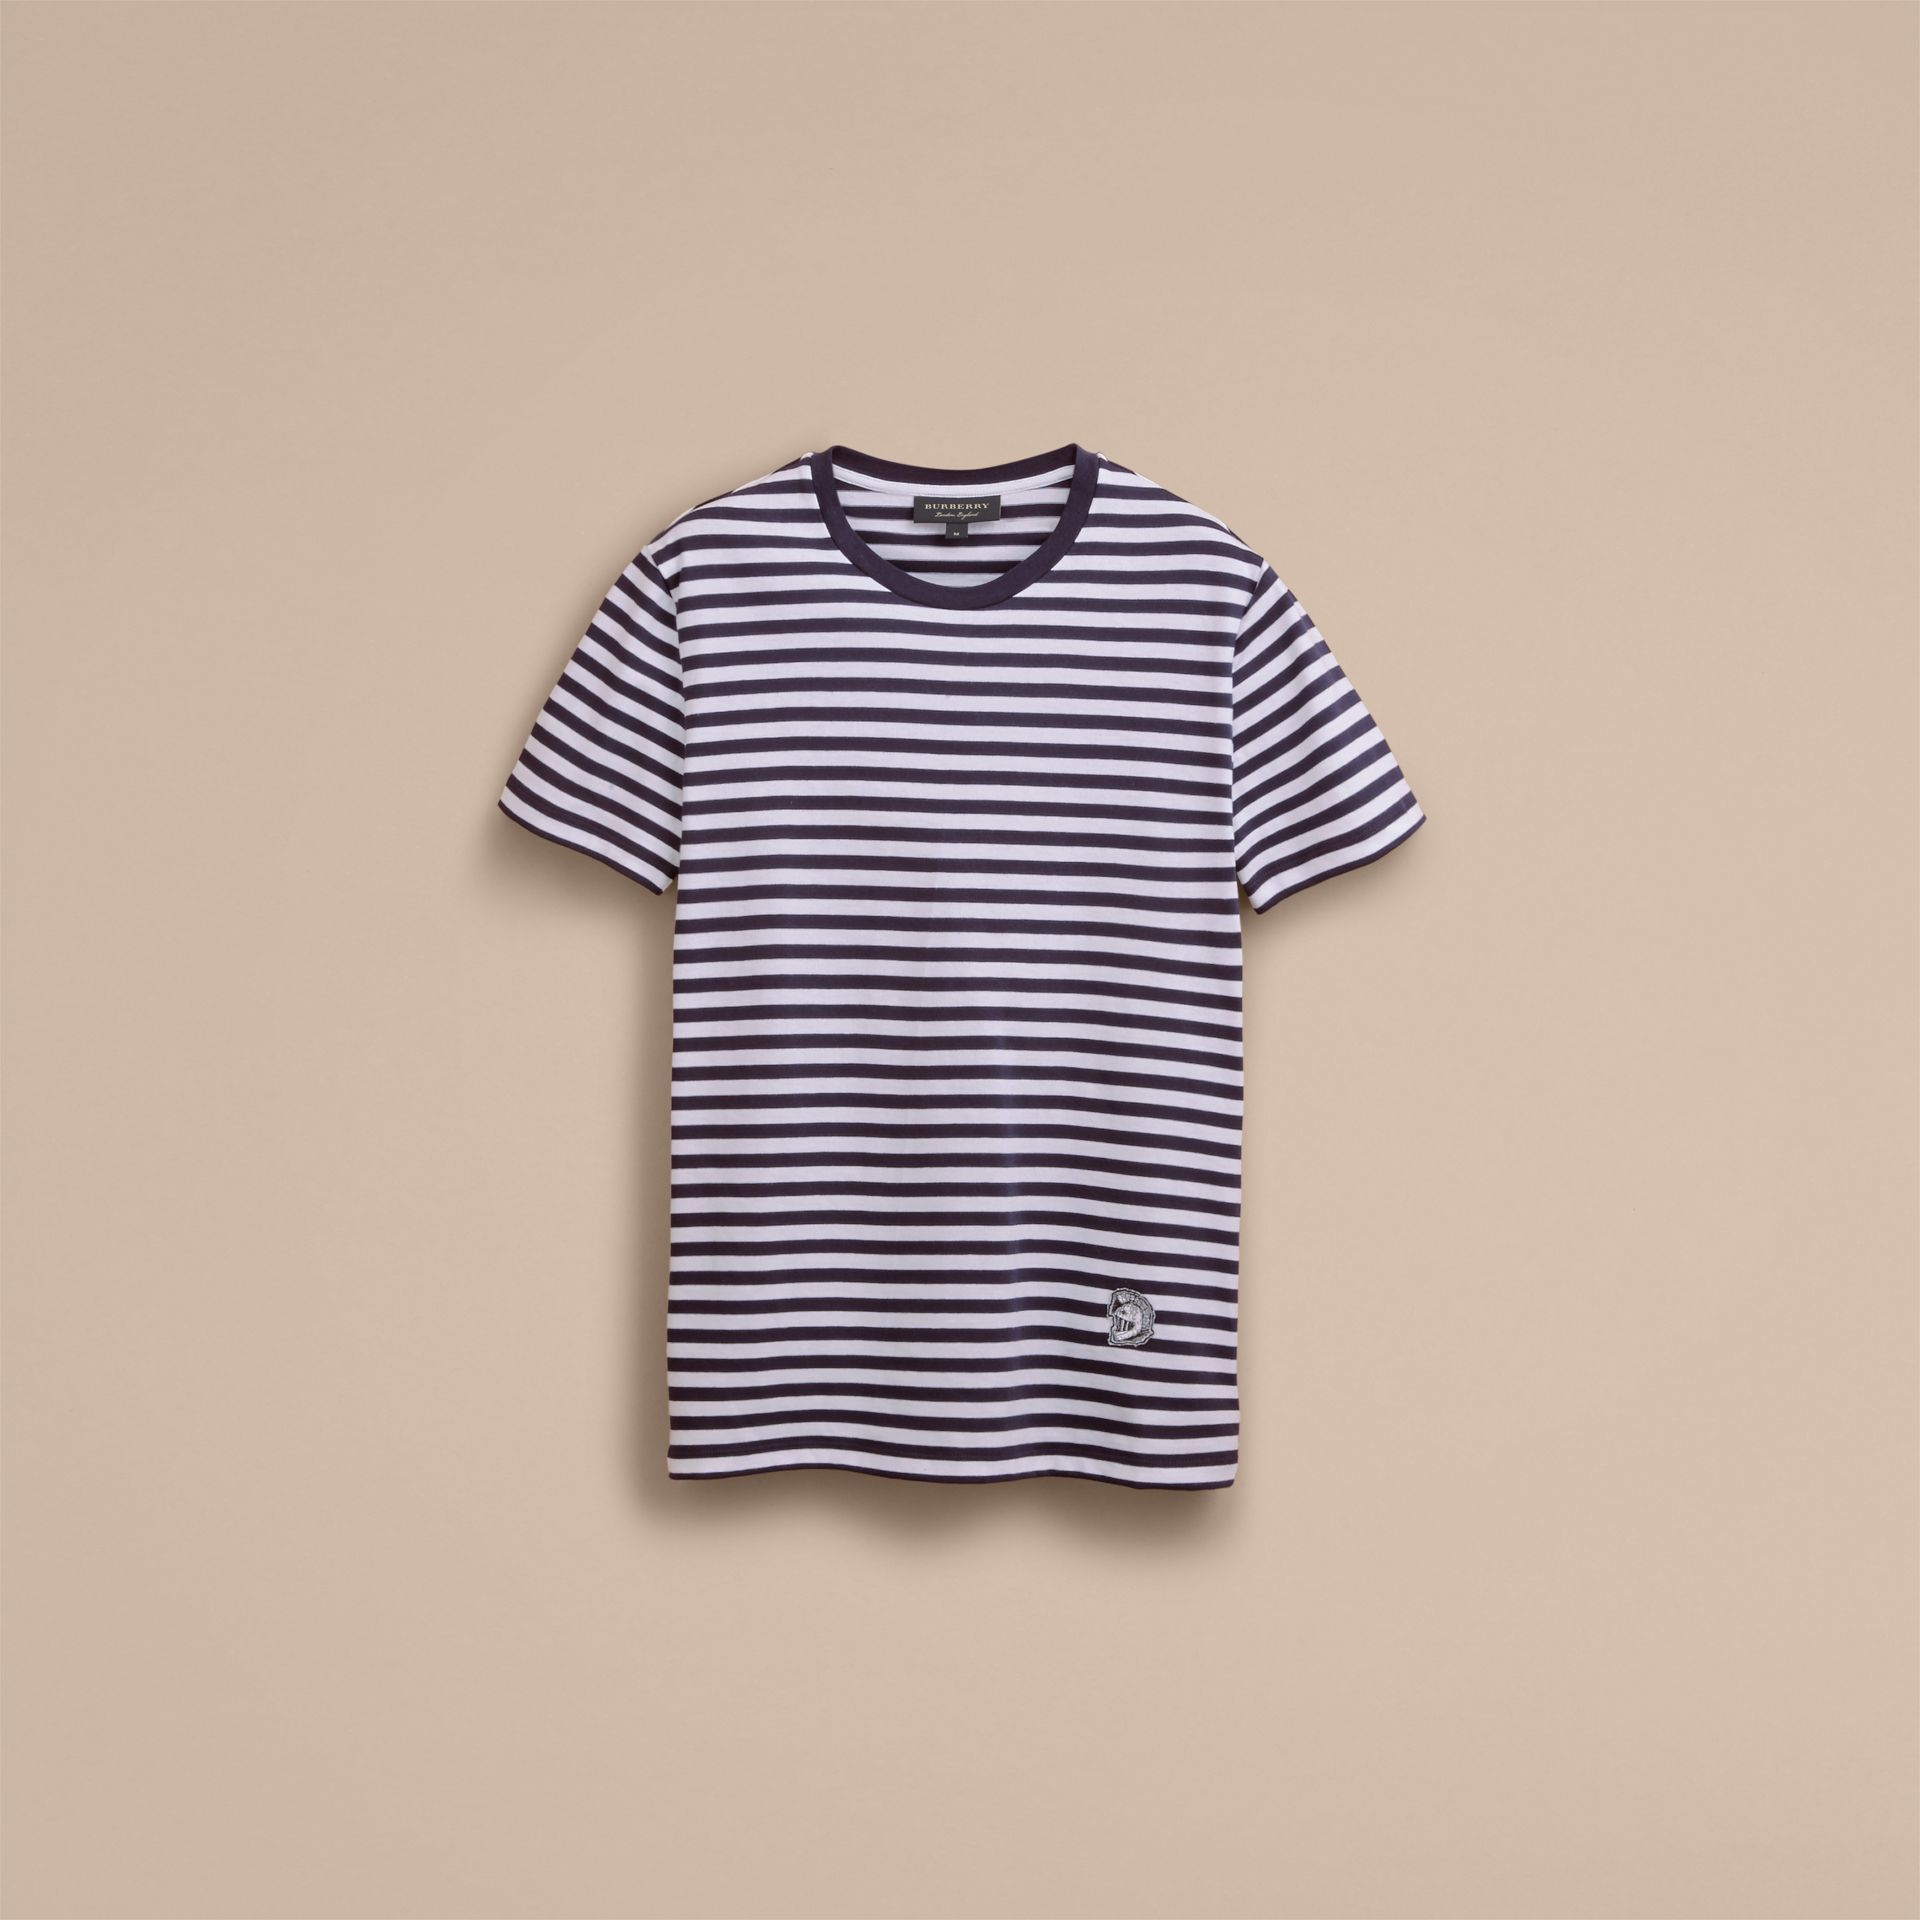 Breton Stripe Cotton T-shirt with Pallas Helmet Motif - Men | Burberry Australia - gallery image 4